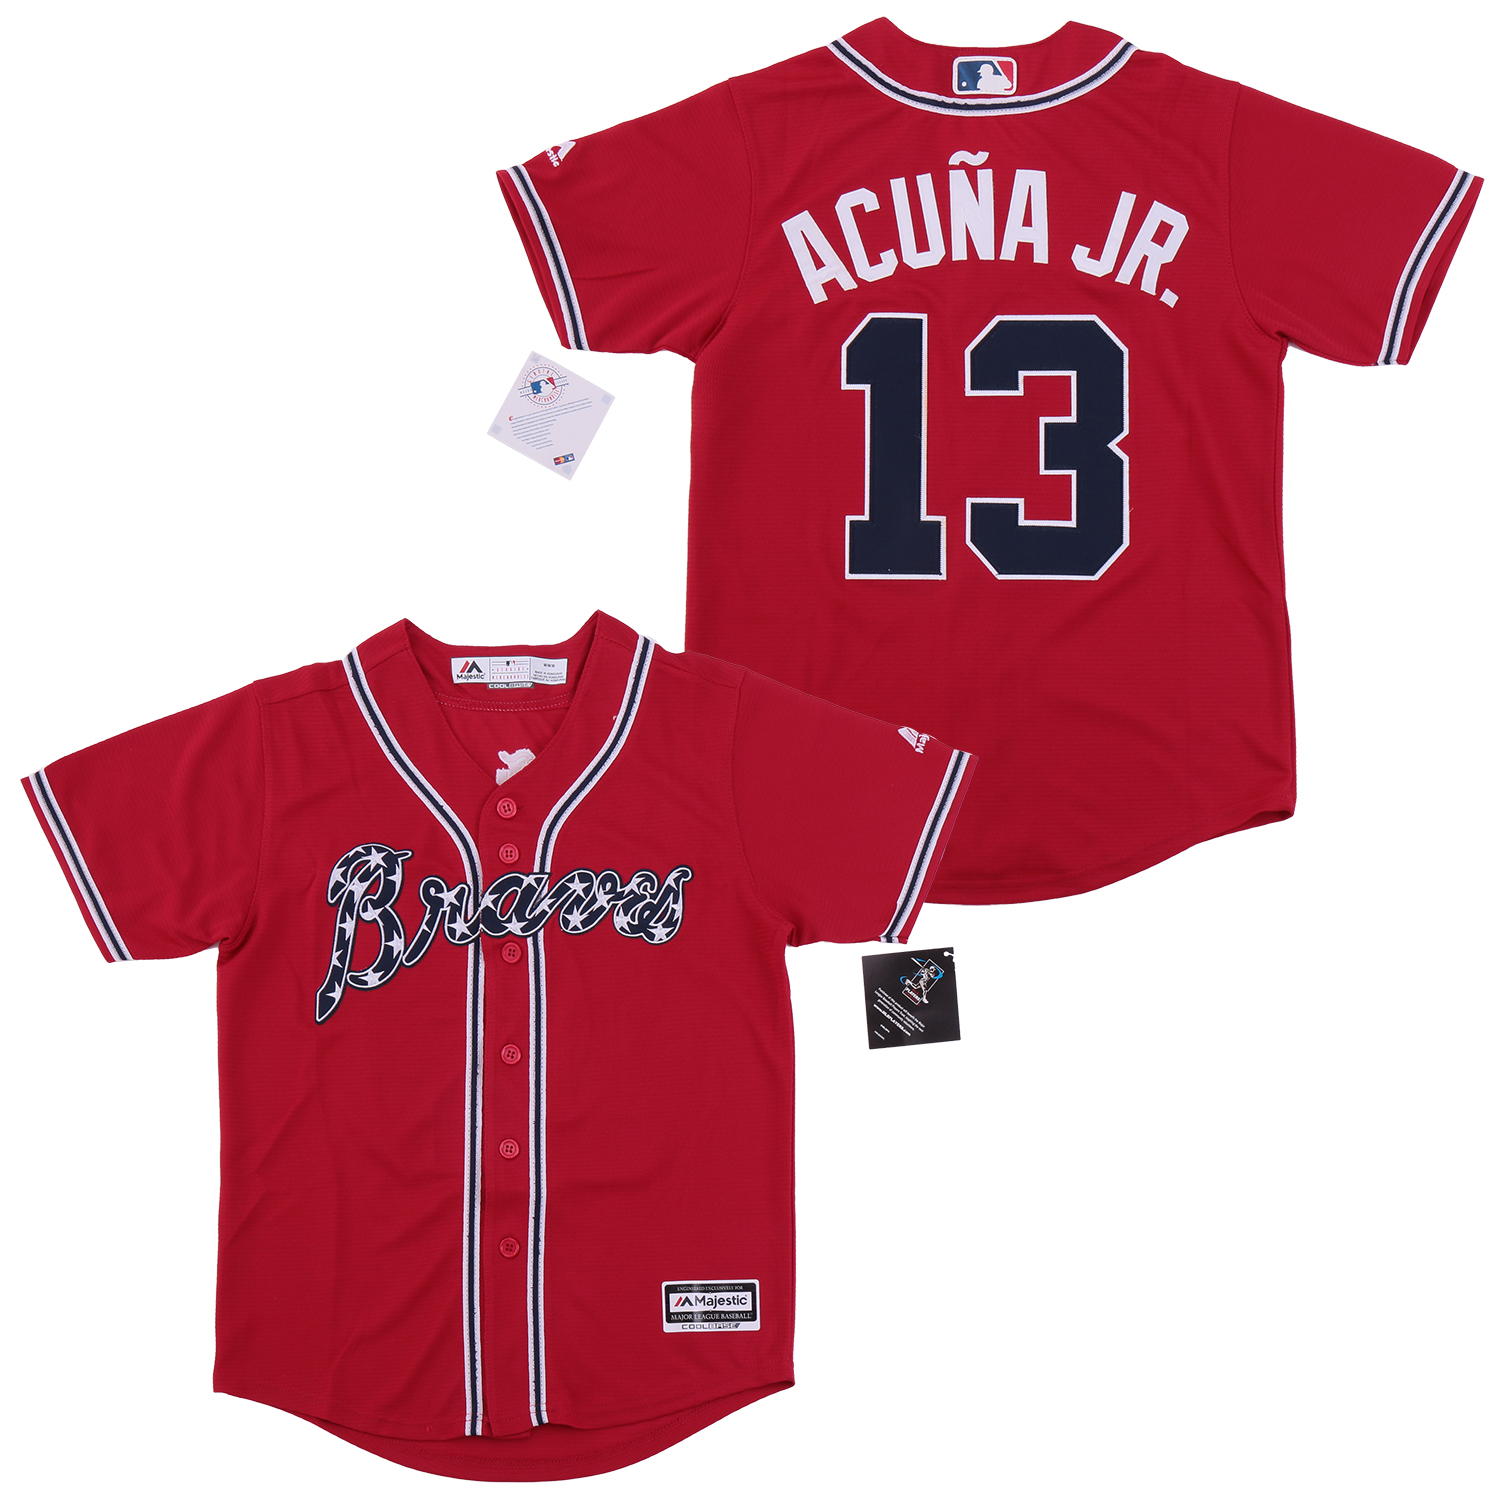 Braves 13 Ronald Acuna Jr. Red Youth Cool Base Jersey